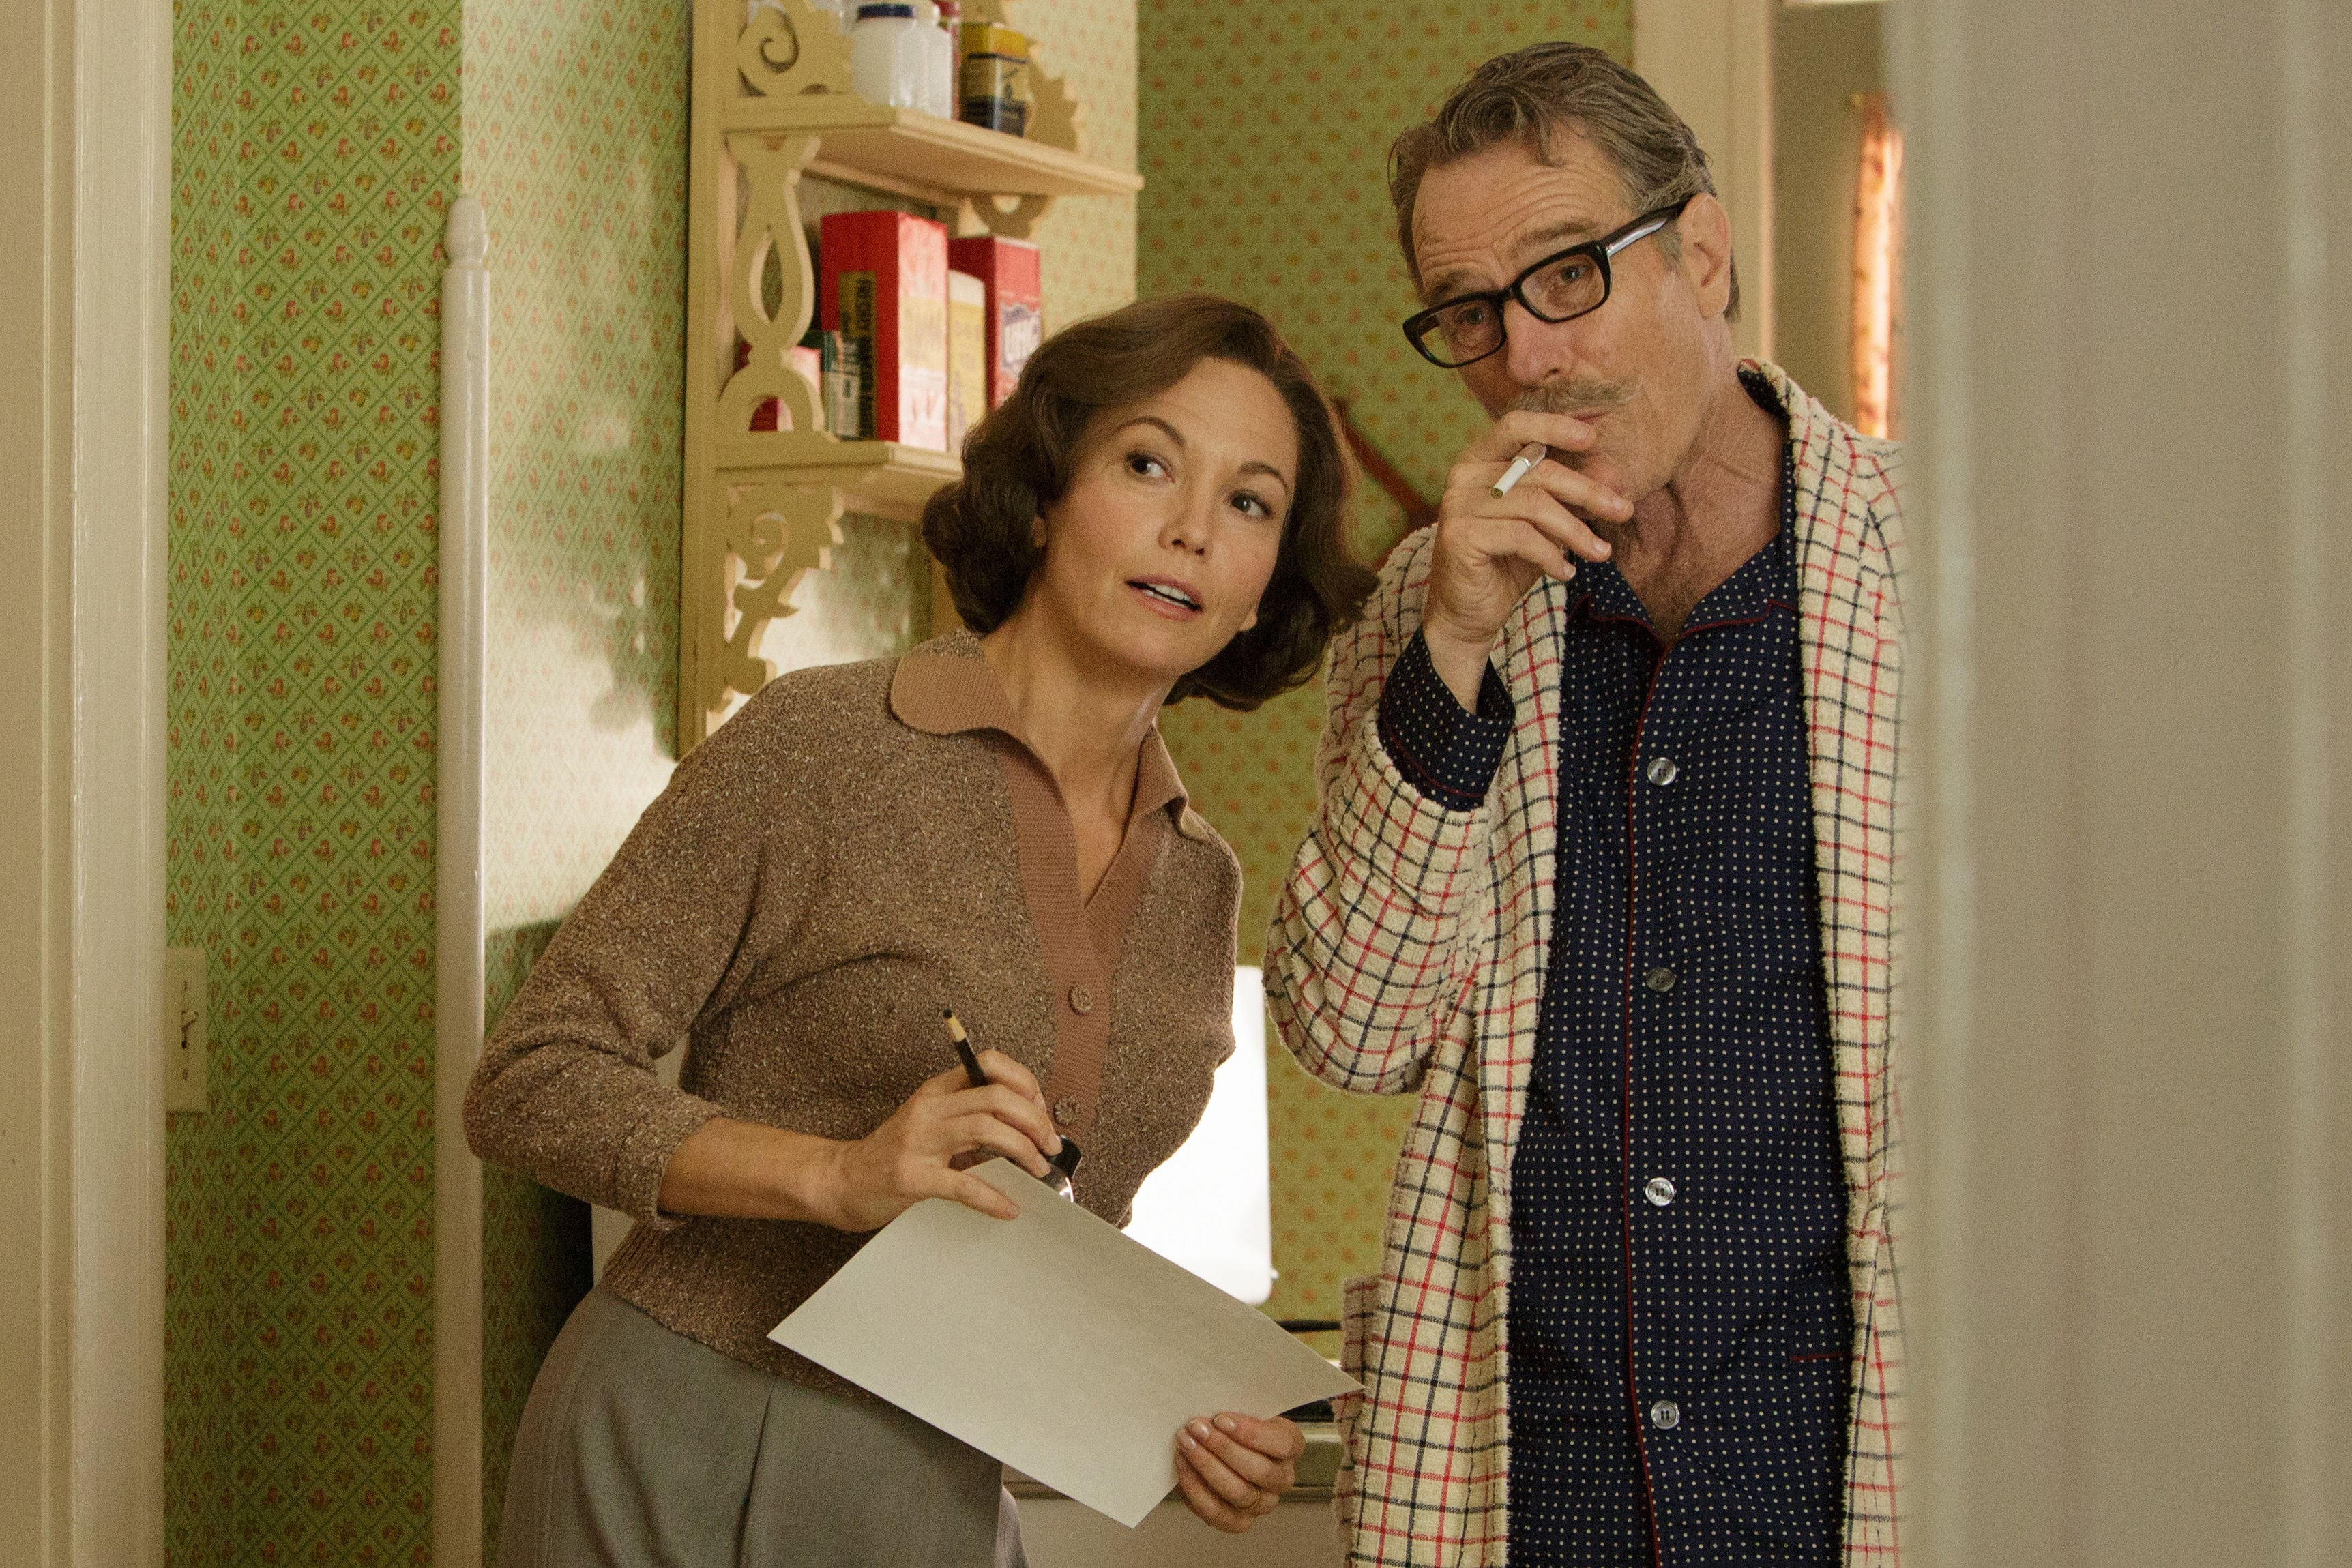 trumbo-bryan-cranston-and-ensemble-shine-in-an-uneven-film-692543